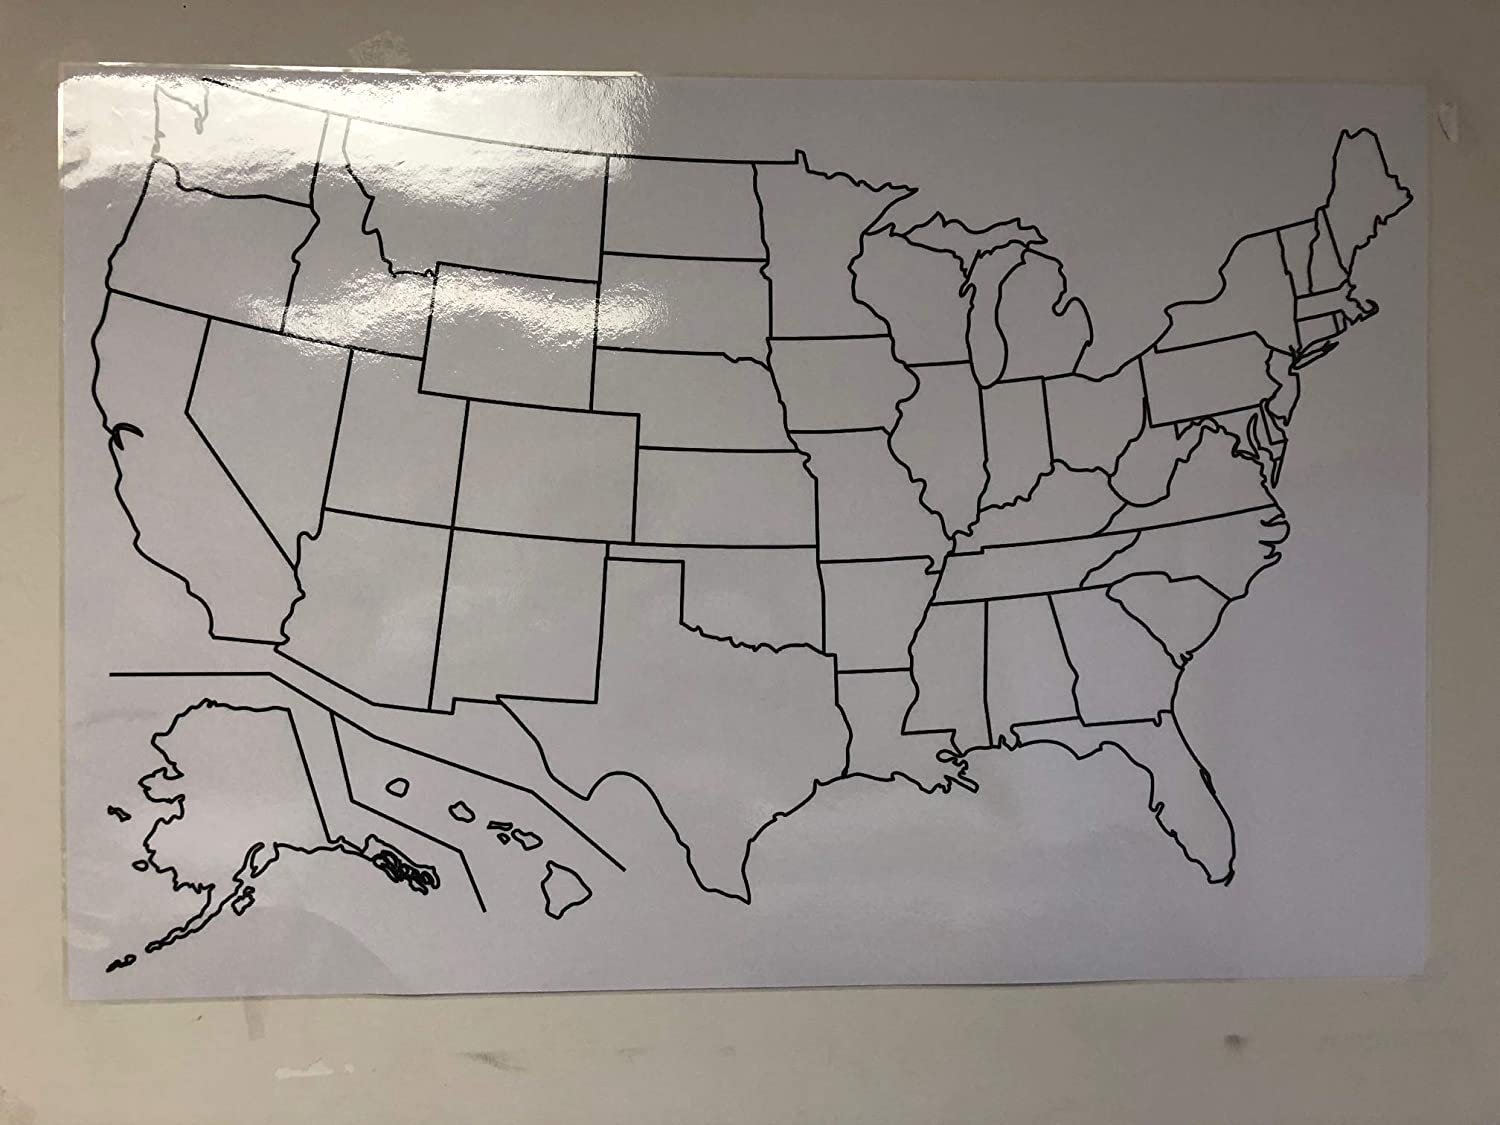 Amazoncom Copy King Blank Us Map Laminated Dry Erase Poster - Blank-us-maps-to-fill-in